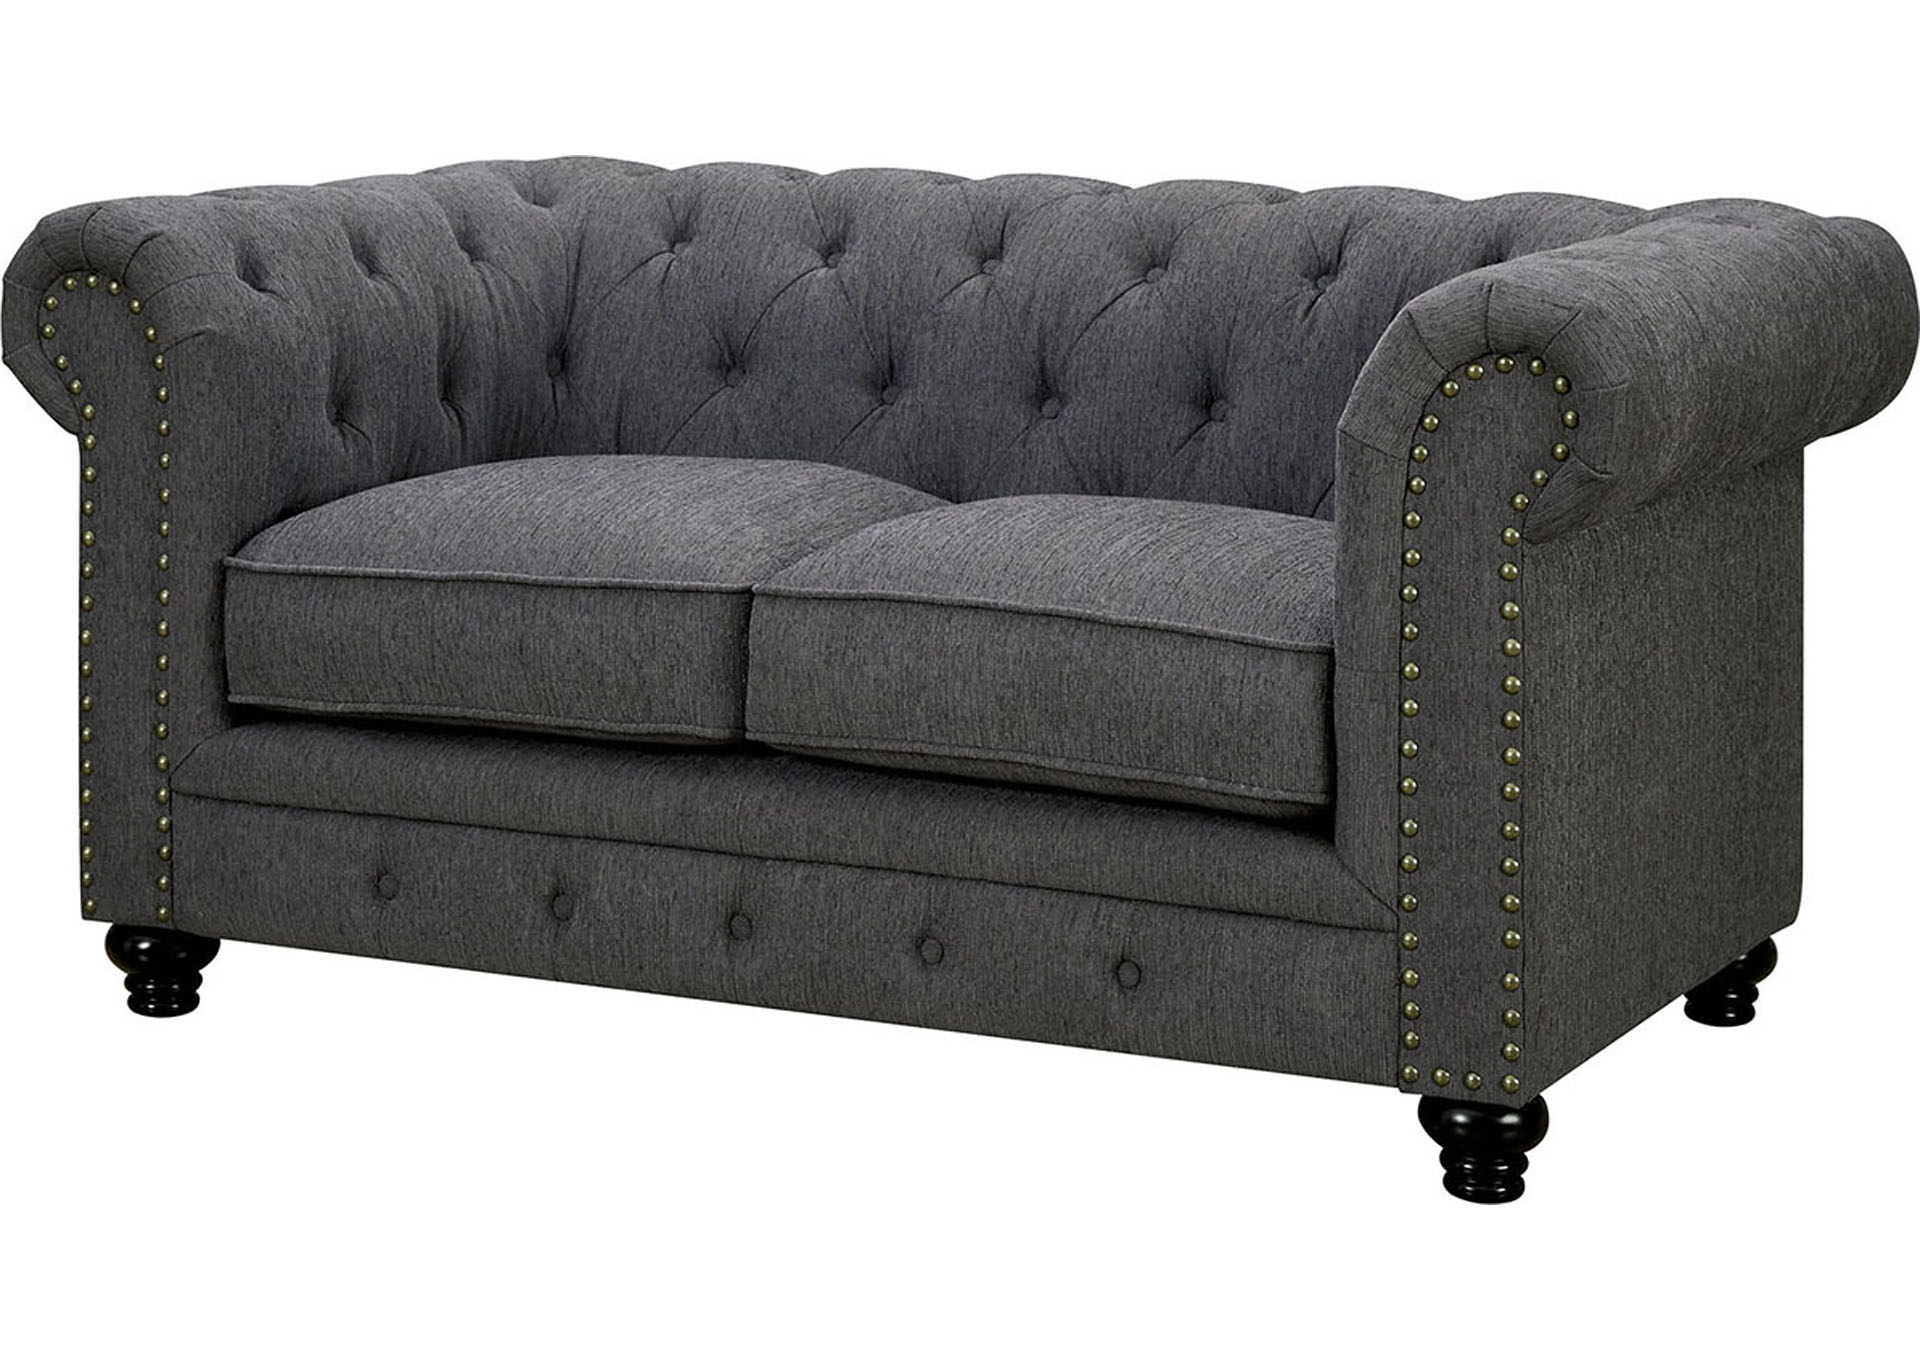 Stanford Gray Loveseat,Furniture of America